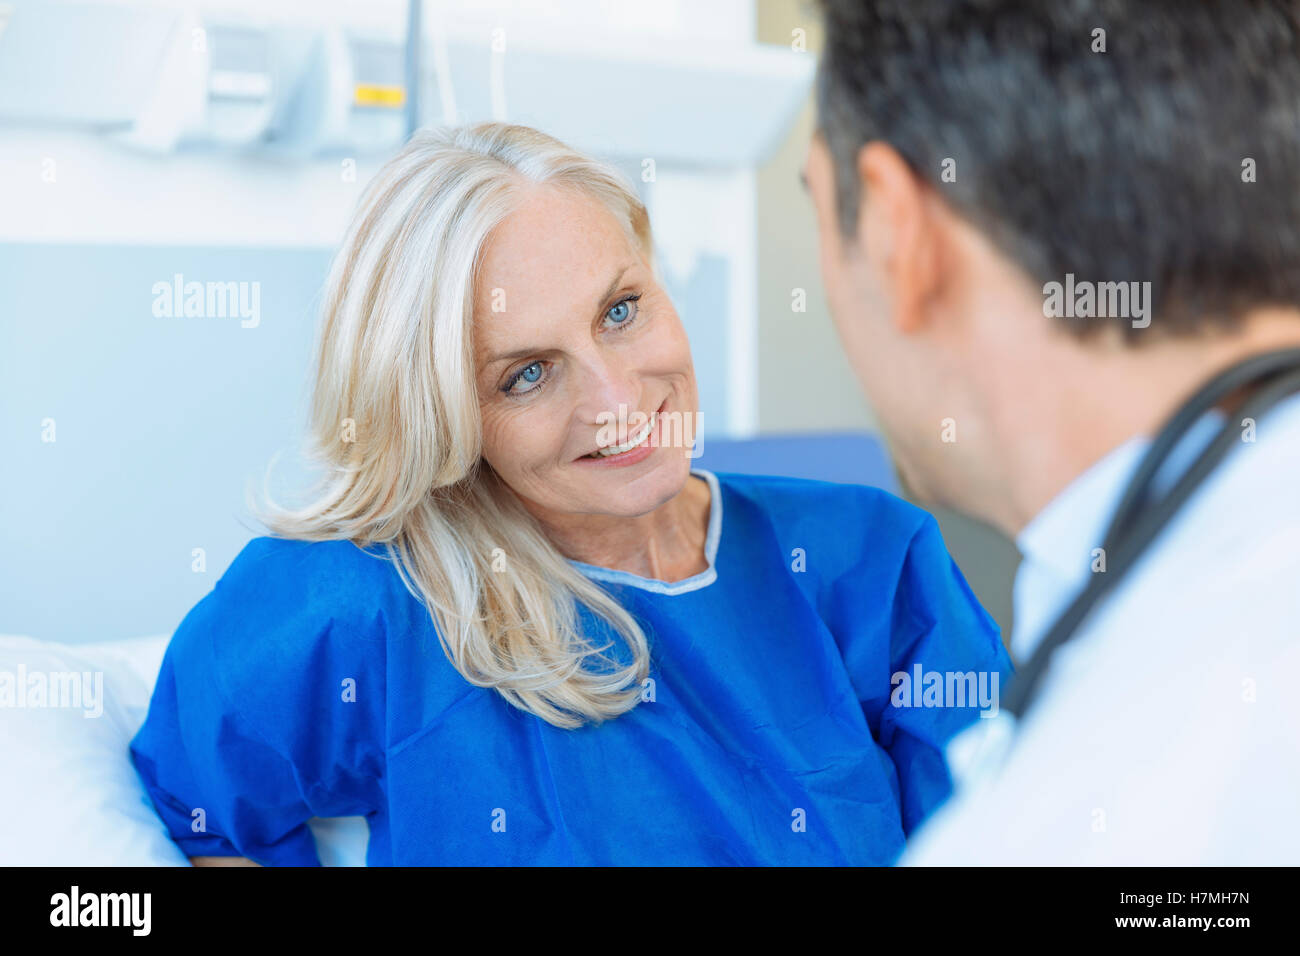 Doctor examining senior patient in hospital - Stock Image